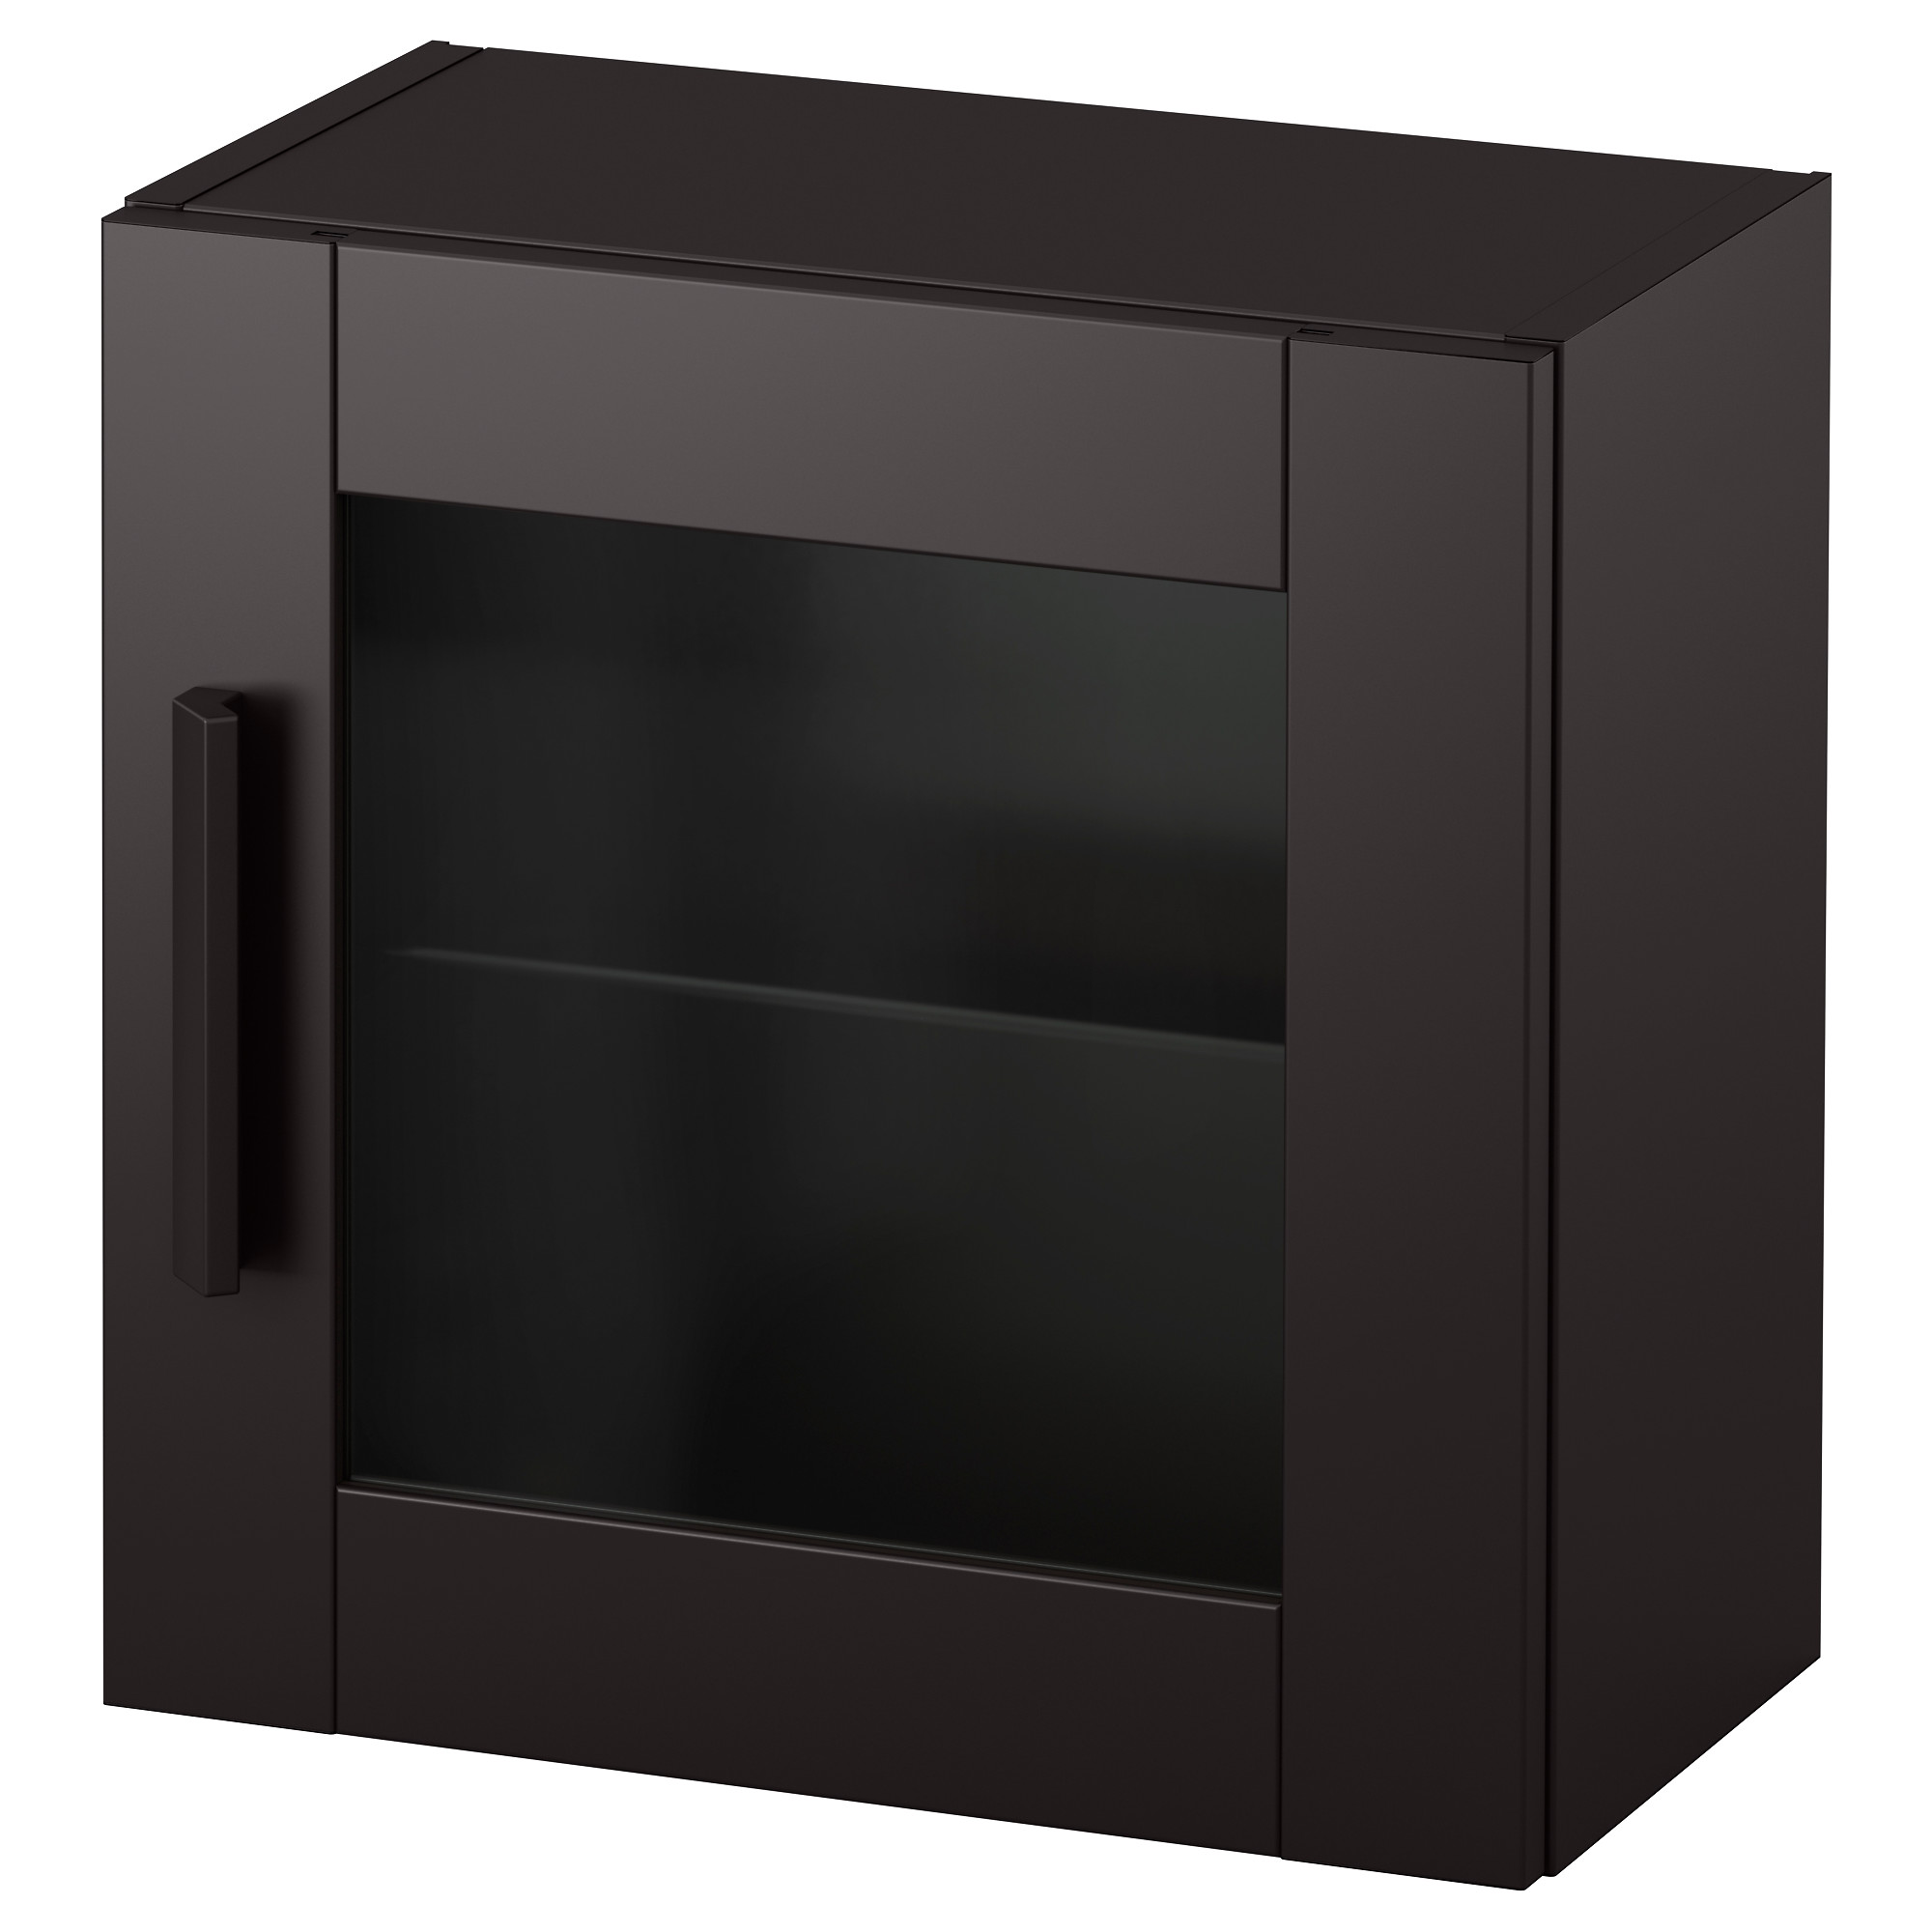 Black Wall Cabinet cabinets & sideboards - ikea